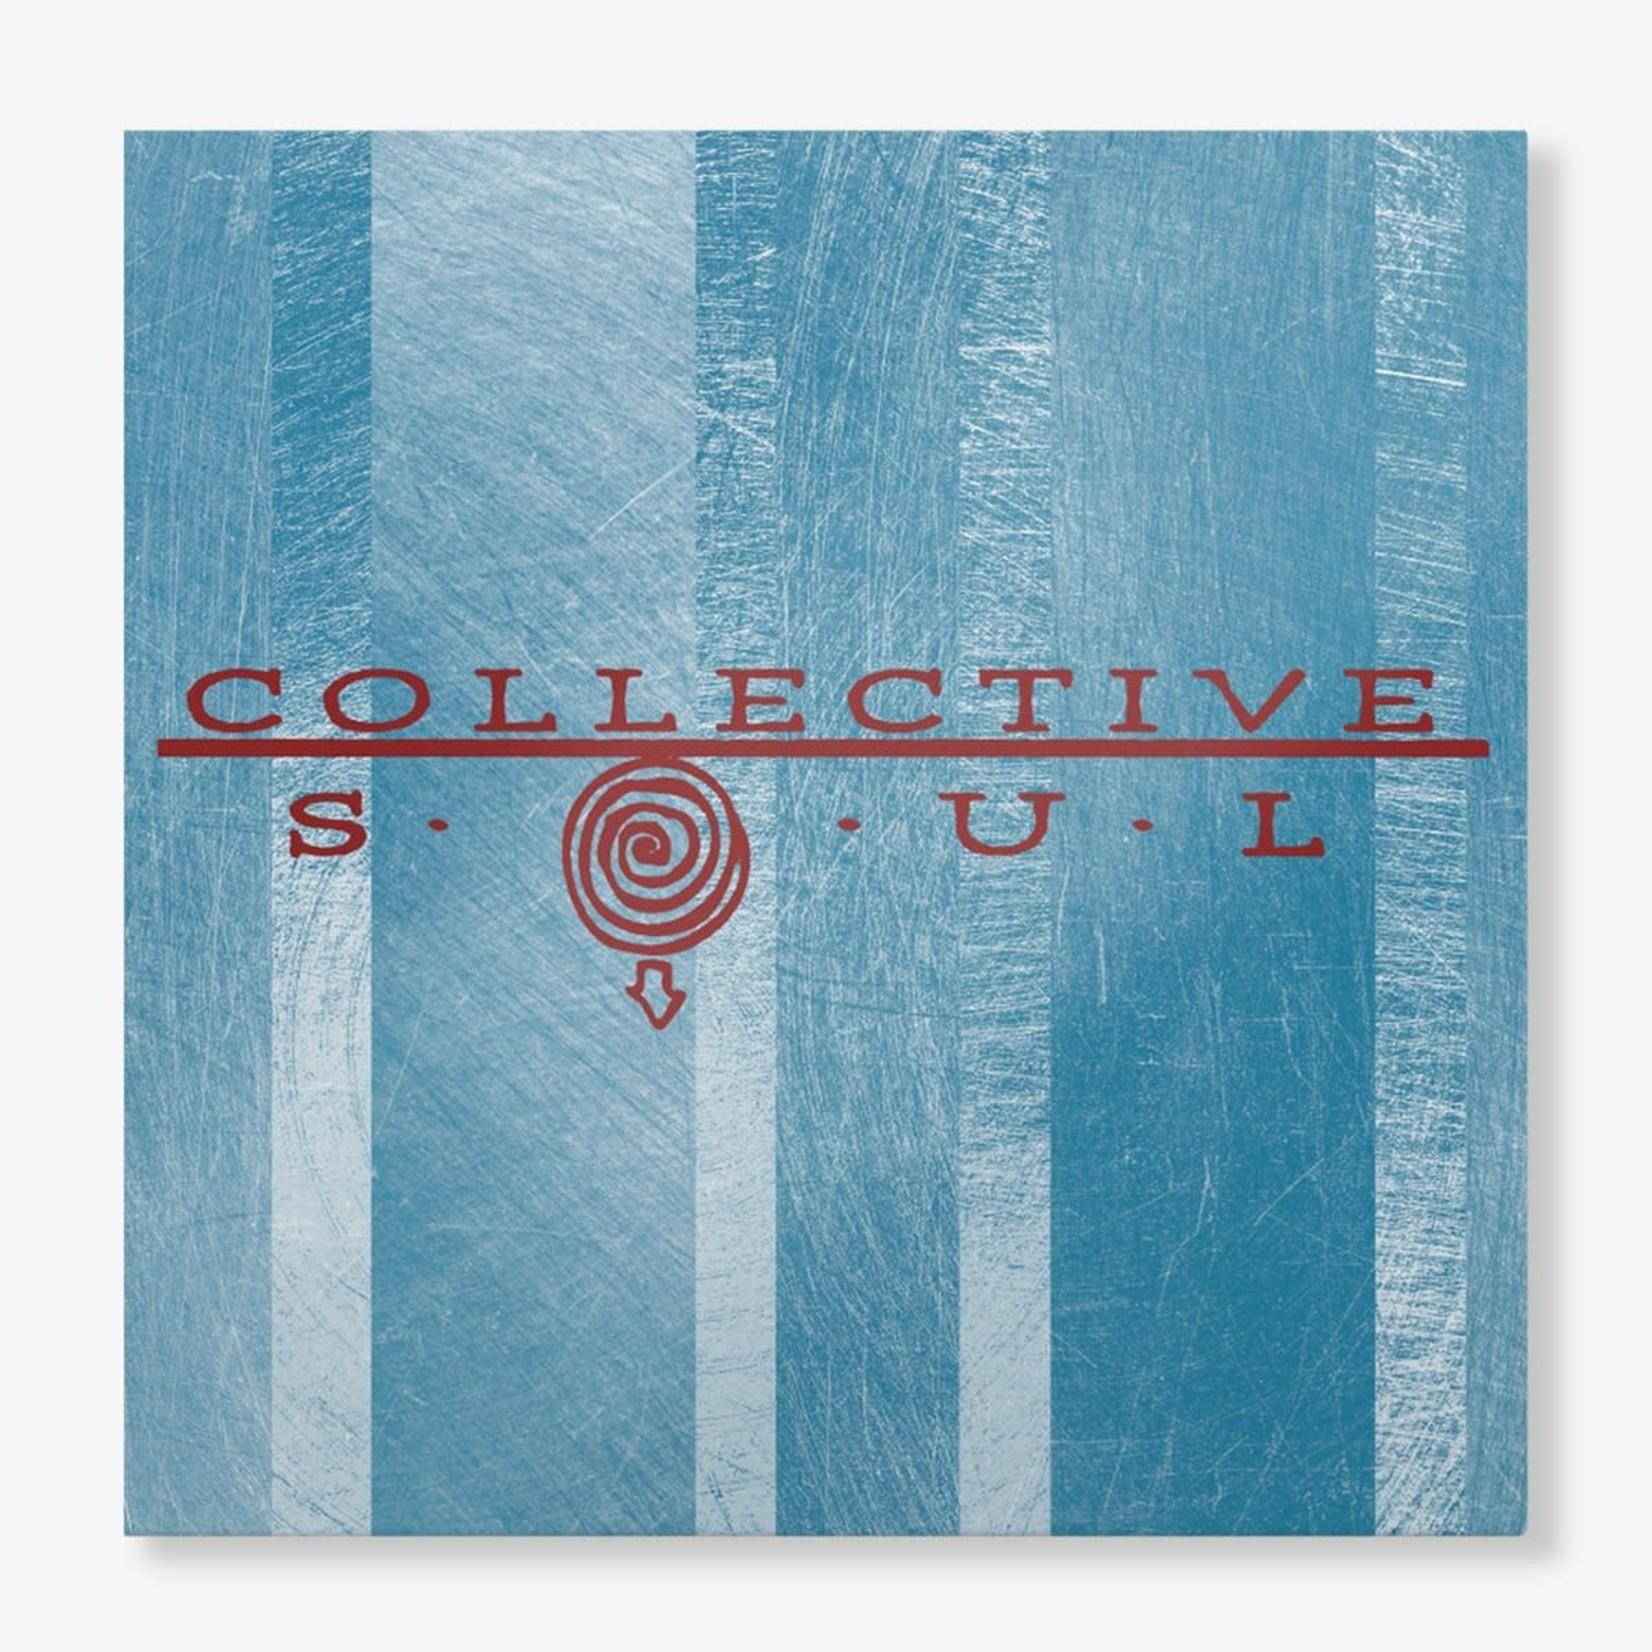 COLLECTIVE SOUL - COLLECTIVE SOUL (25TH ANNIVERSARY EDITION)